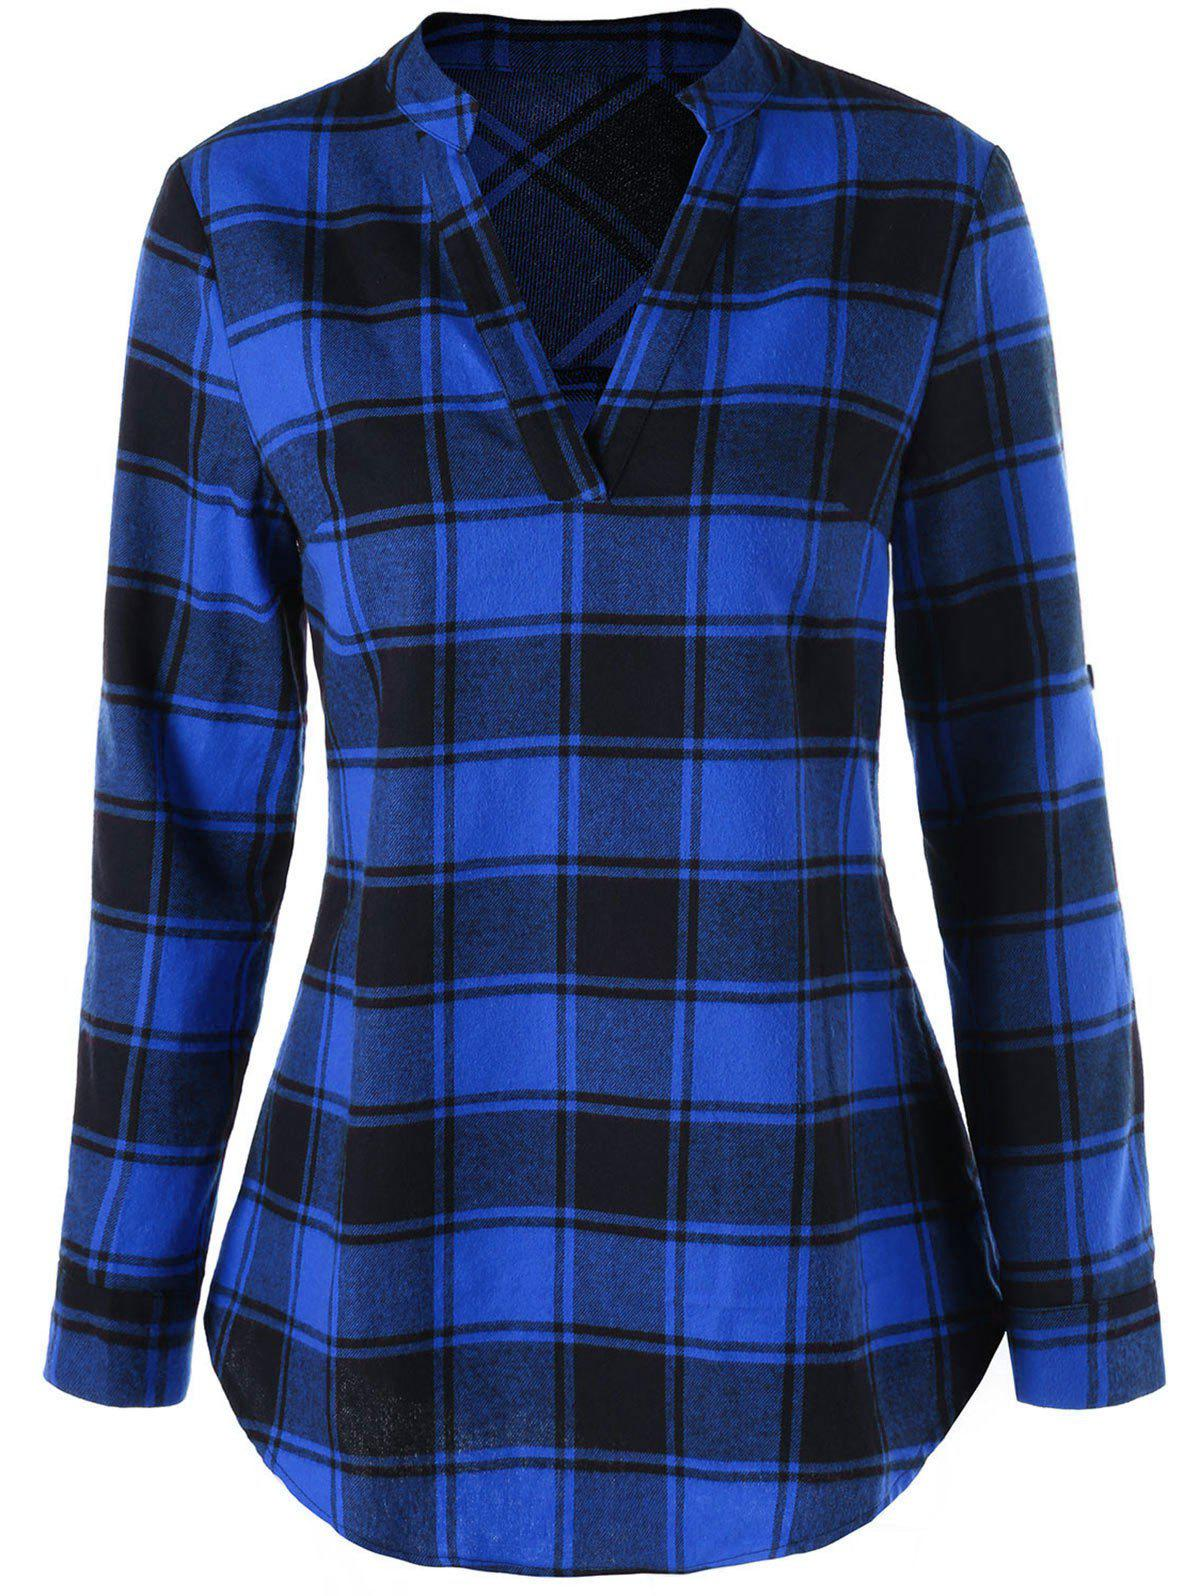 Curved Hem Plaid Blouse